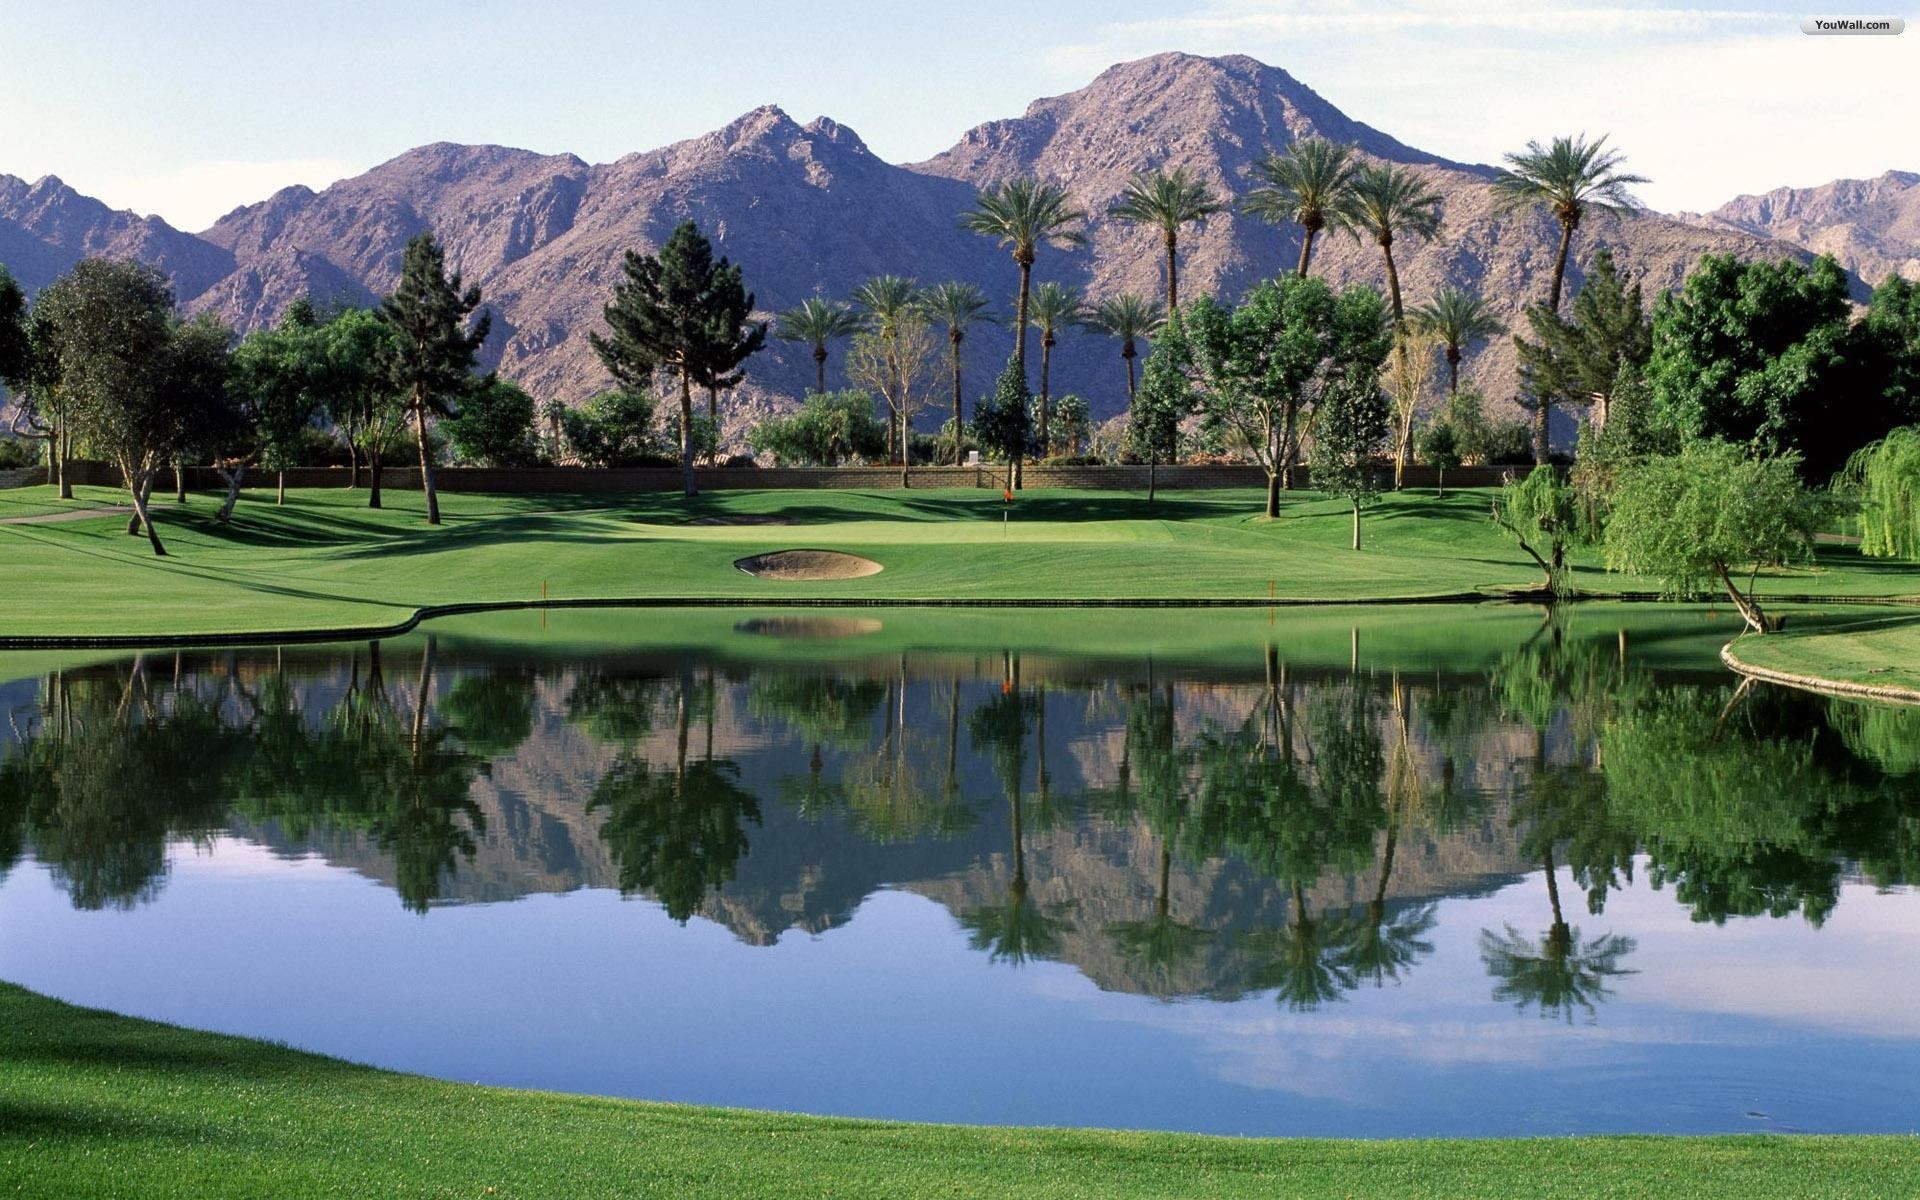 Res: 1920x1200, Golf desktop wallpapers in best quality - PGA tours and Golf fields